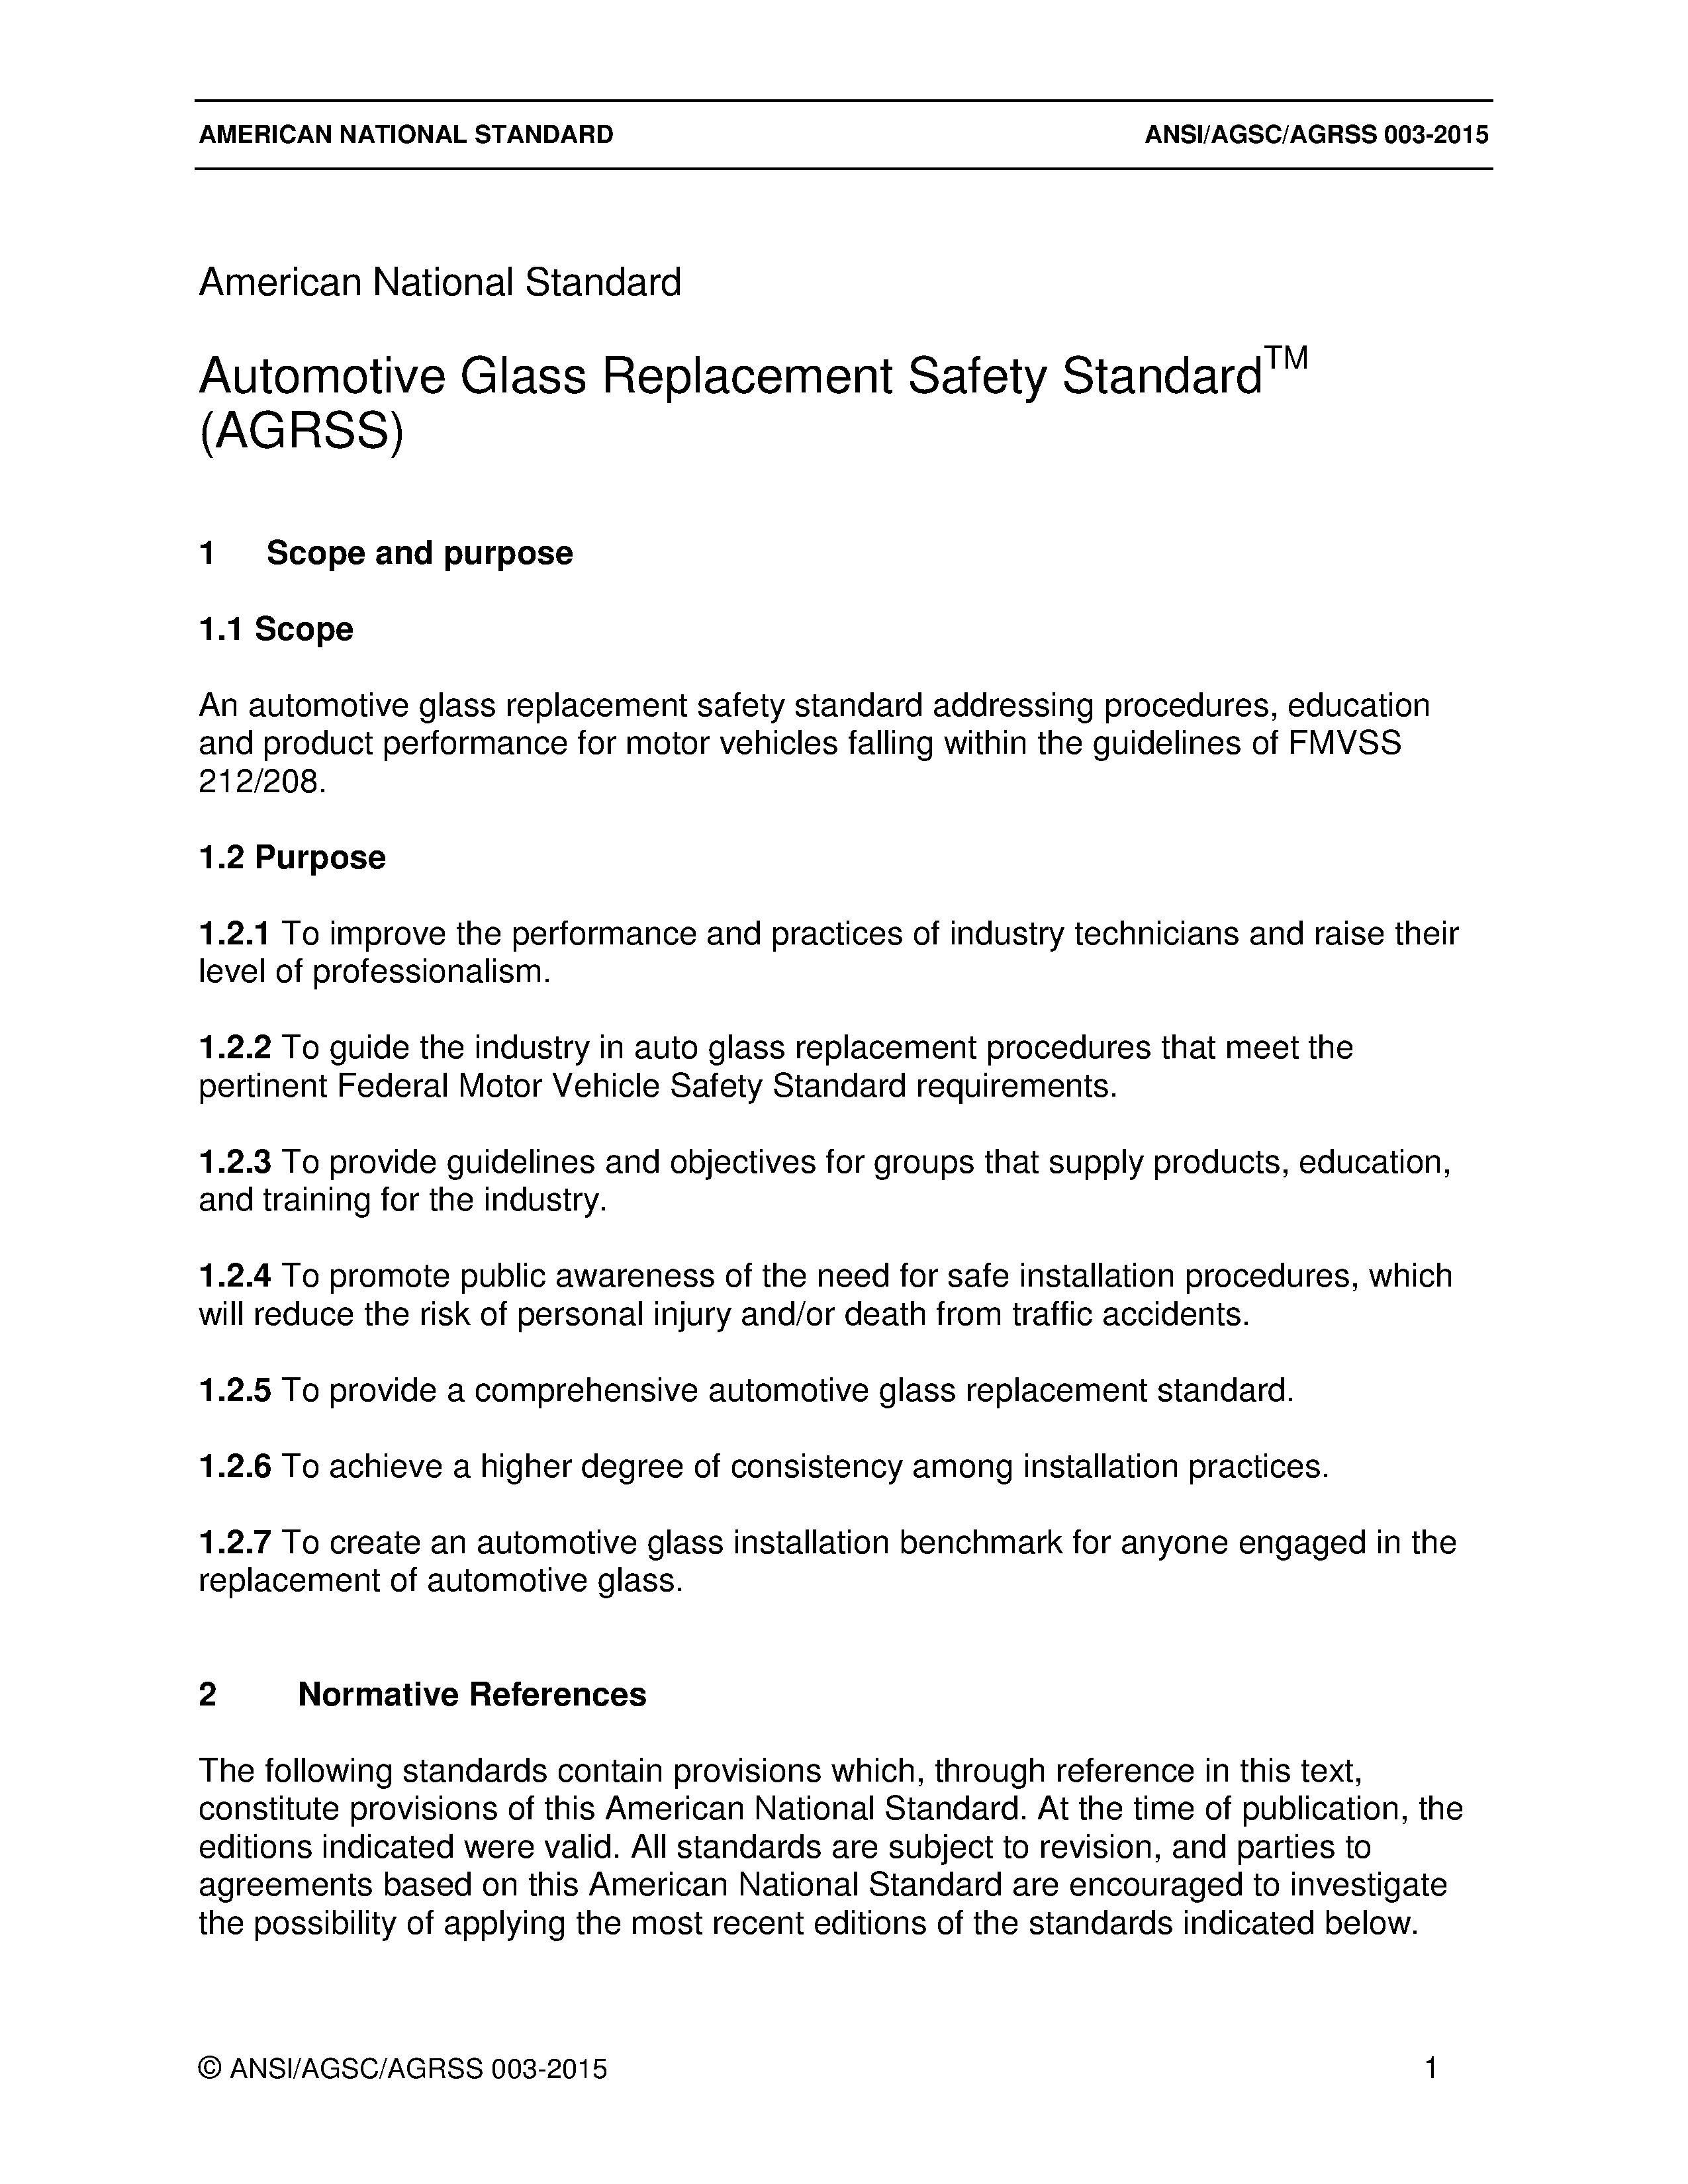 Ansiagscagrss Standard Auto Glass Safety Council